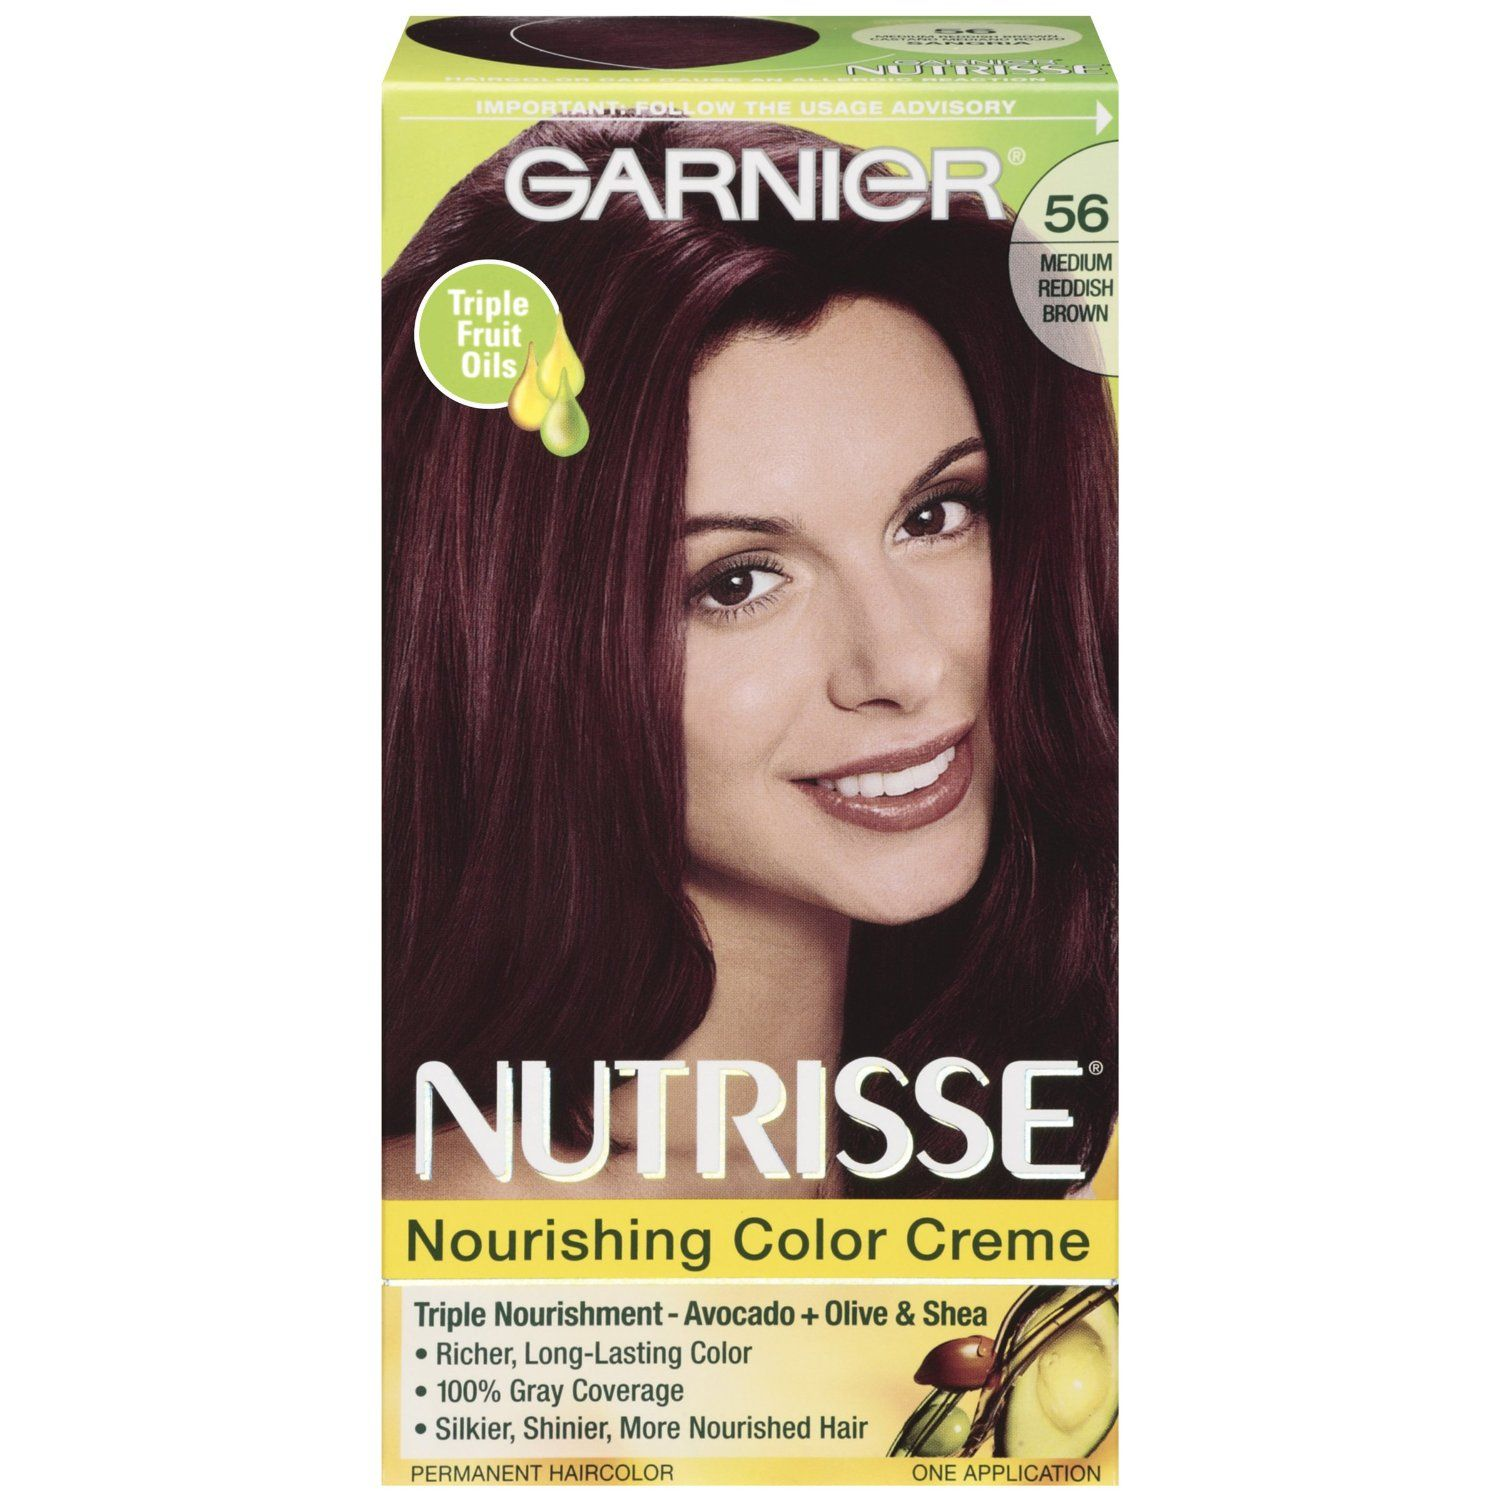 Amazon garnier nutrisse haircolor 56 medium reddish brown garnier nutrisse haircolor 42 deep burgundy black cherryrich healthy looking color experience garnier nutrisse a nourishing color treatment that gives nvjuhfo Image collections